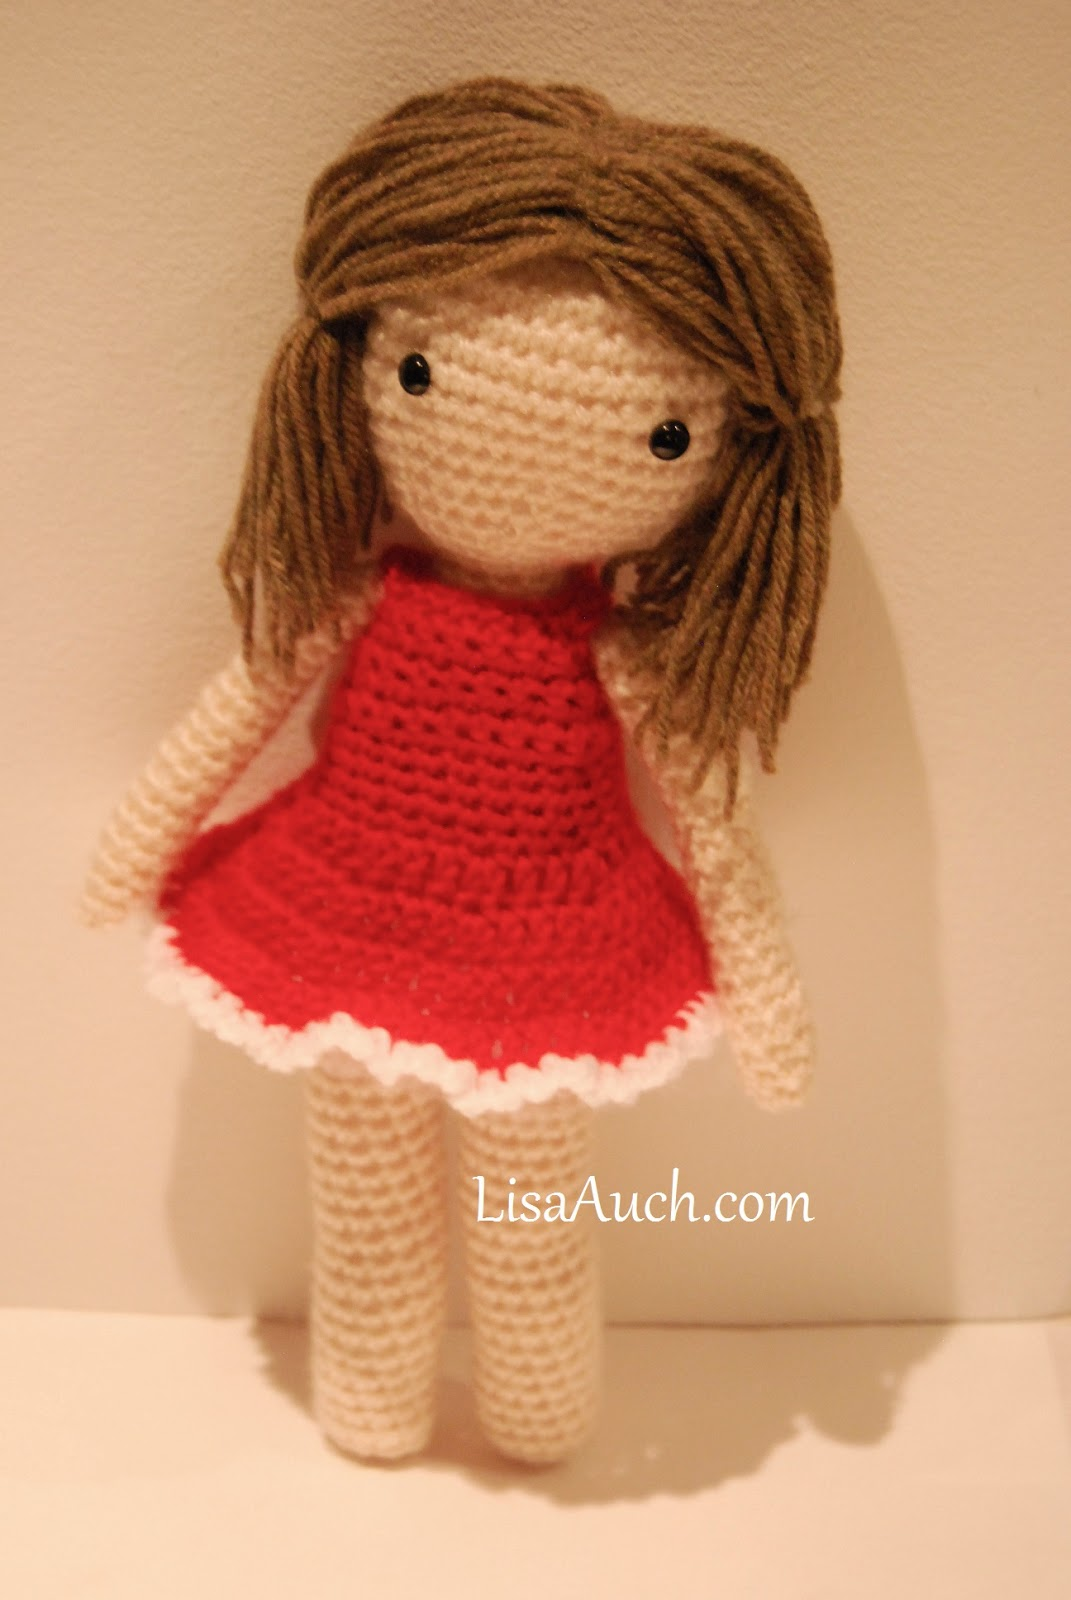 Crochet Patterns Doll Dresses : Crochet Red Dress Pattern for your Basic Amigurumi Doll (Free Pattern ...